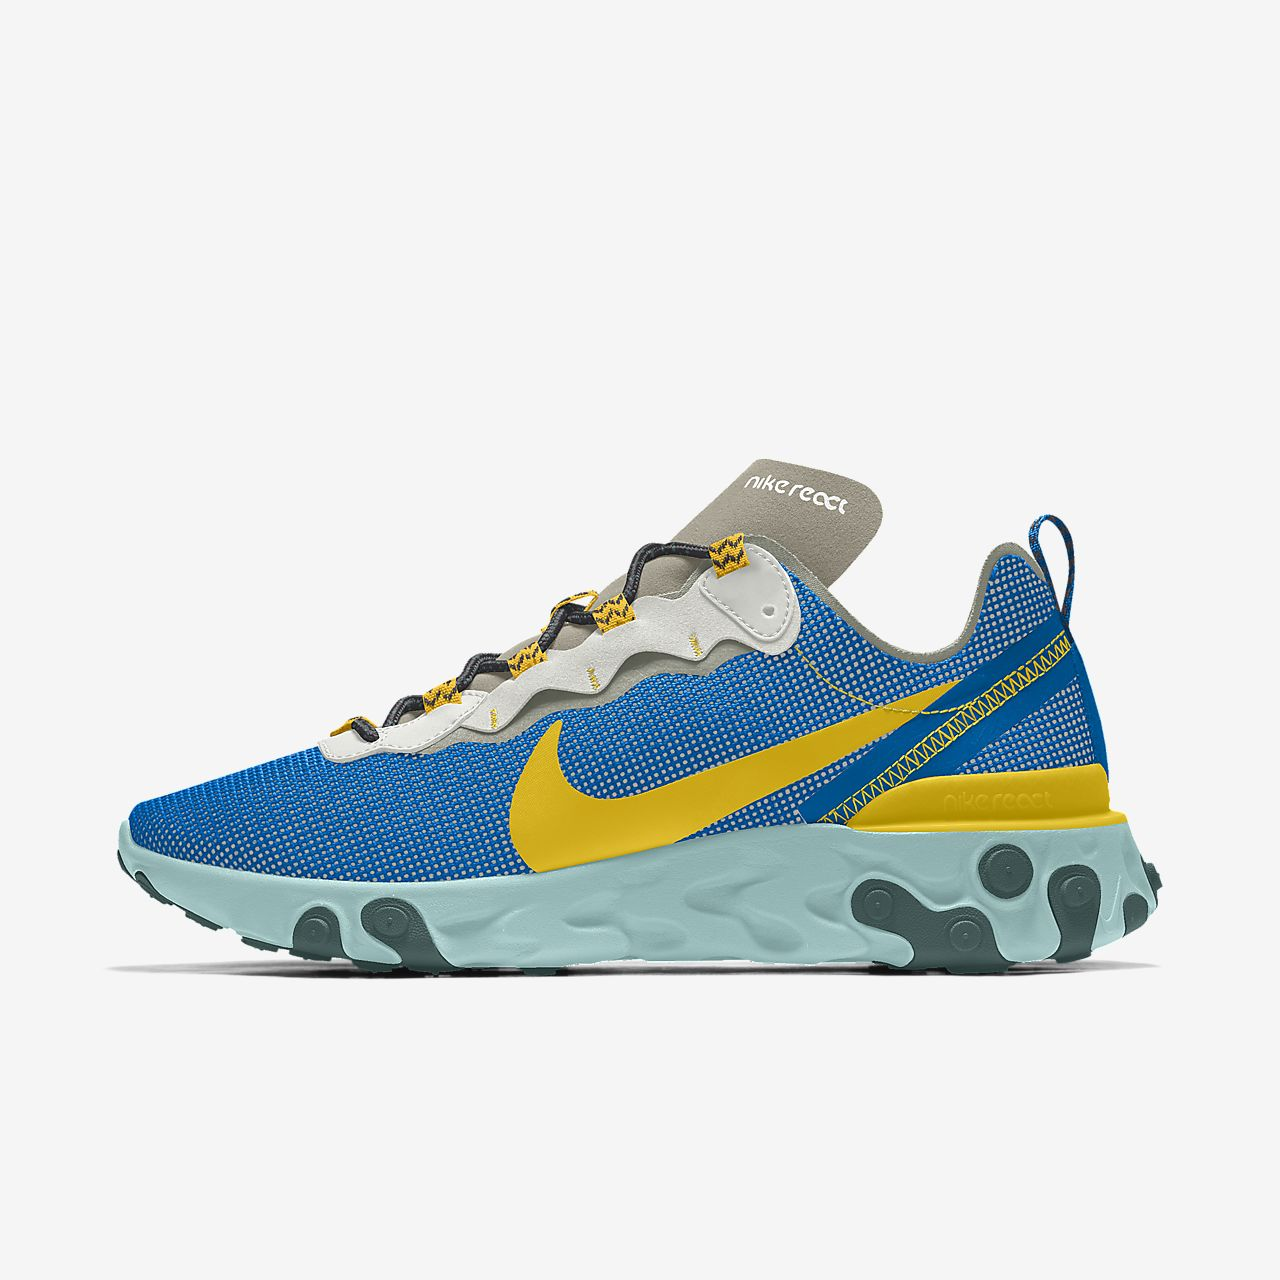 Nike React 55 Premium By You personalisierbarer Herrenschuh